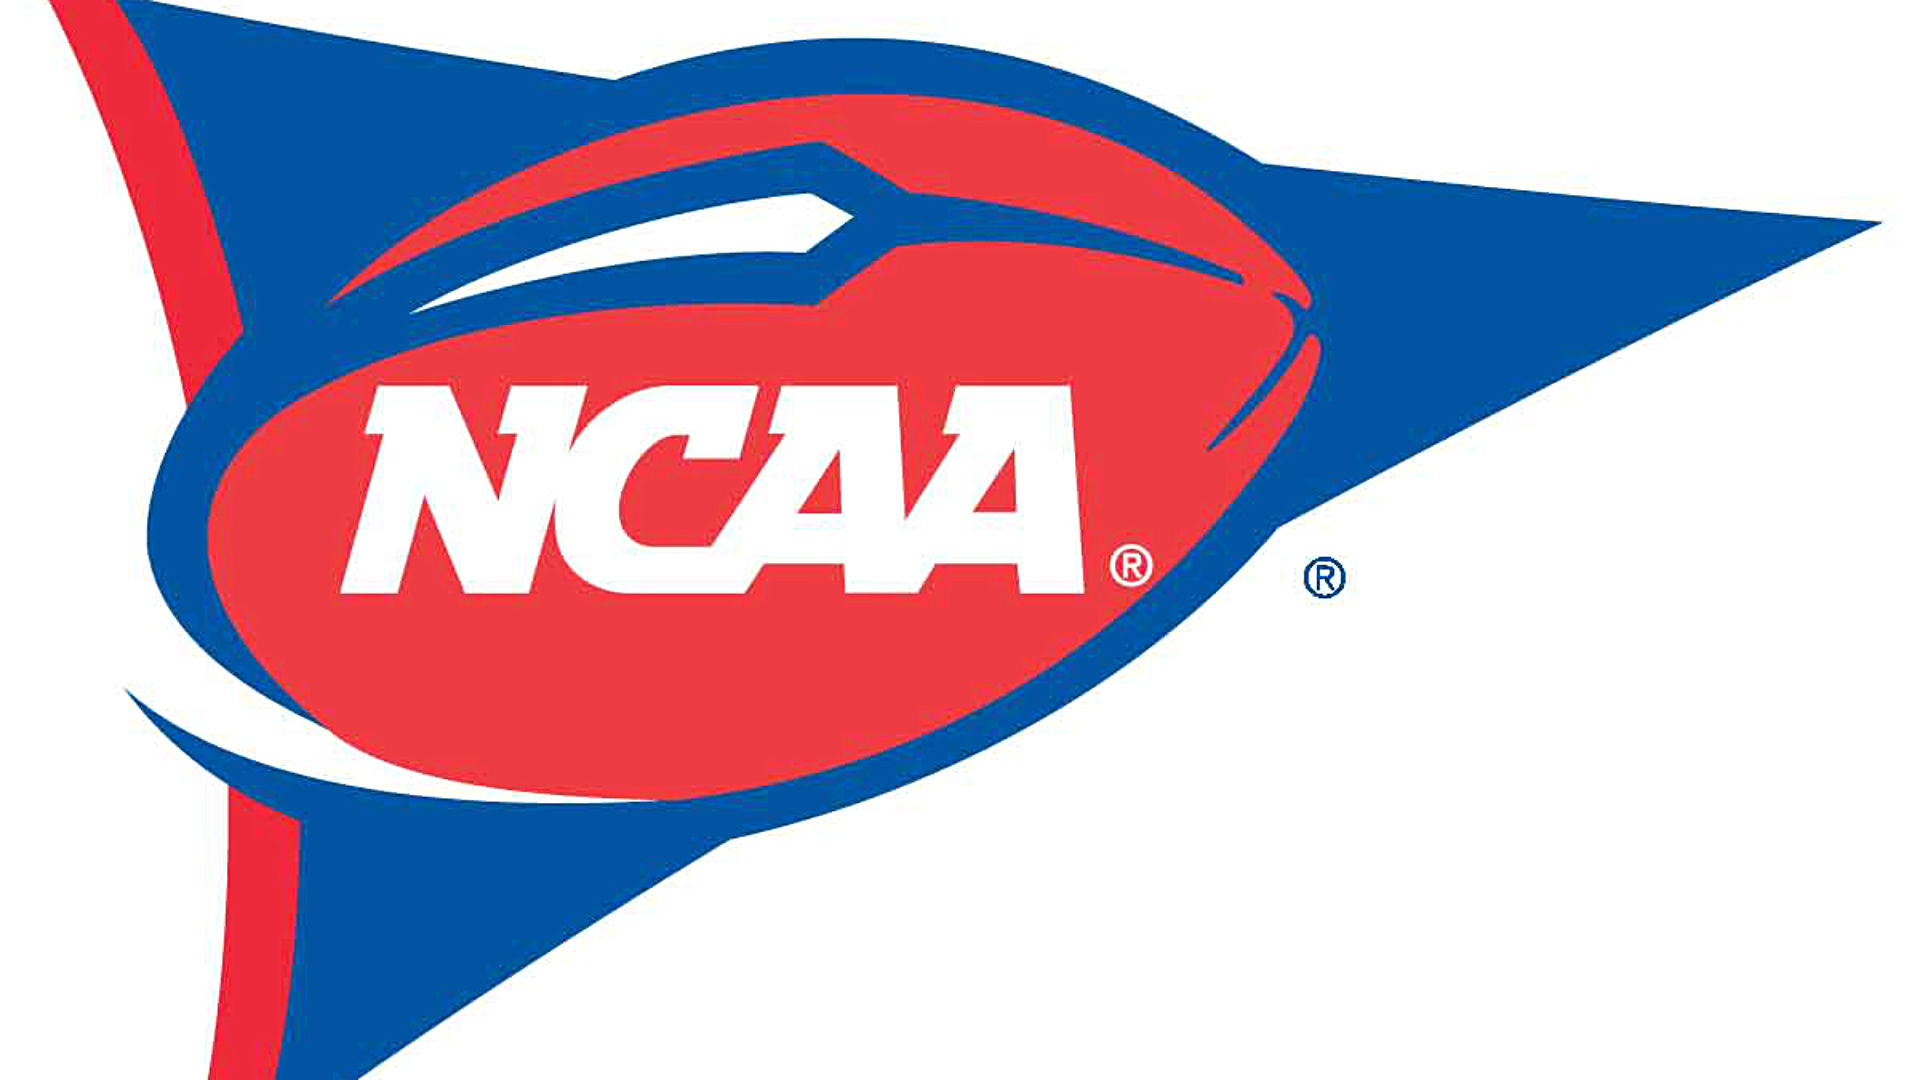 www.espn ncaa football scores ncaa game schedule